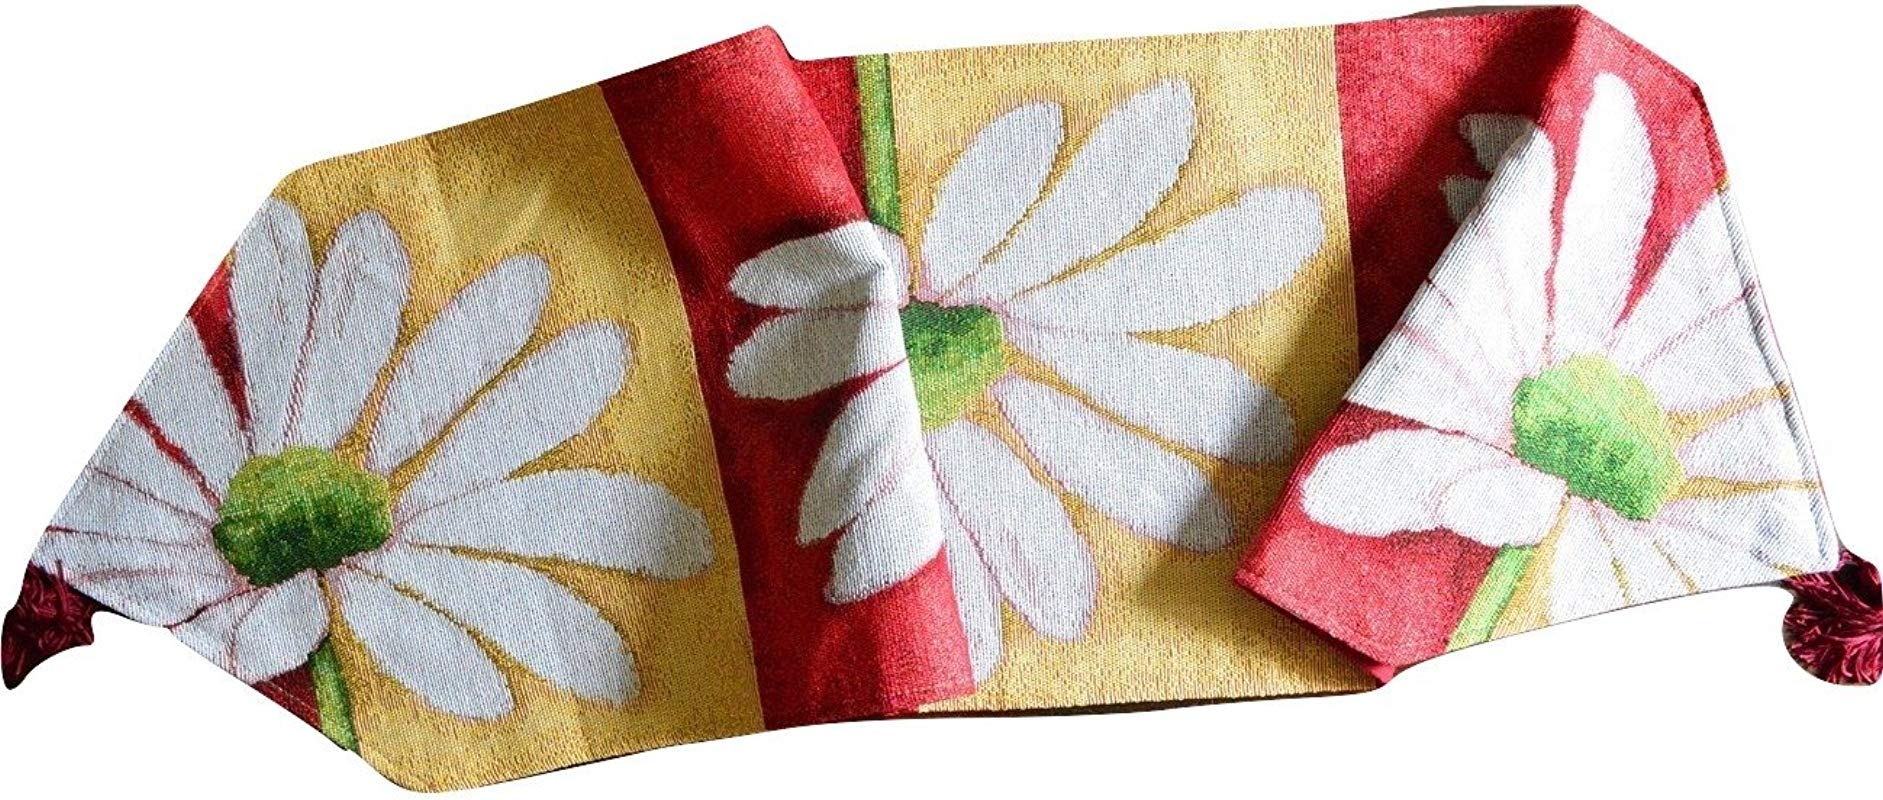 Tache Home Fashion DB9046TR 13X67 Colorful Decorative Spring Summer Daisy Flower Loves Me Not Floral Kitchen Dining Table Runner Linen 13x67 Multi Red Yellow White